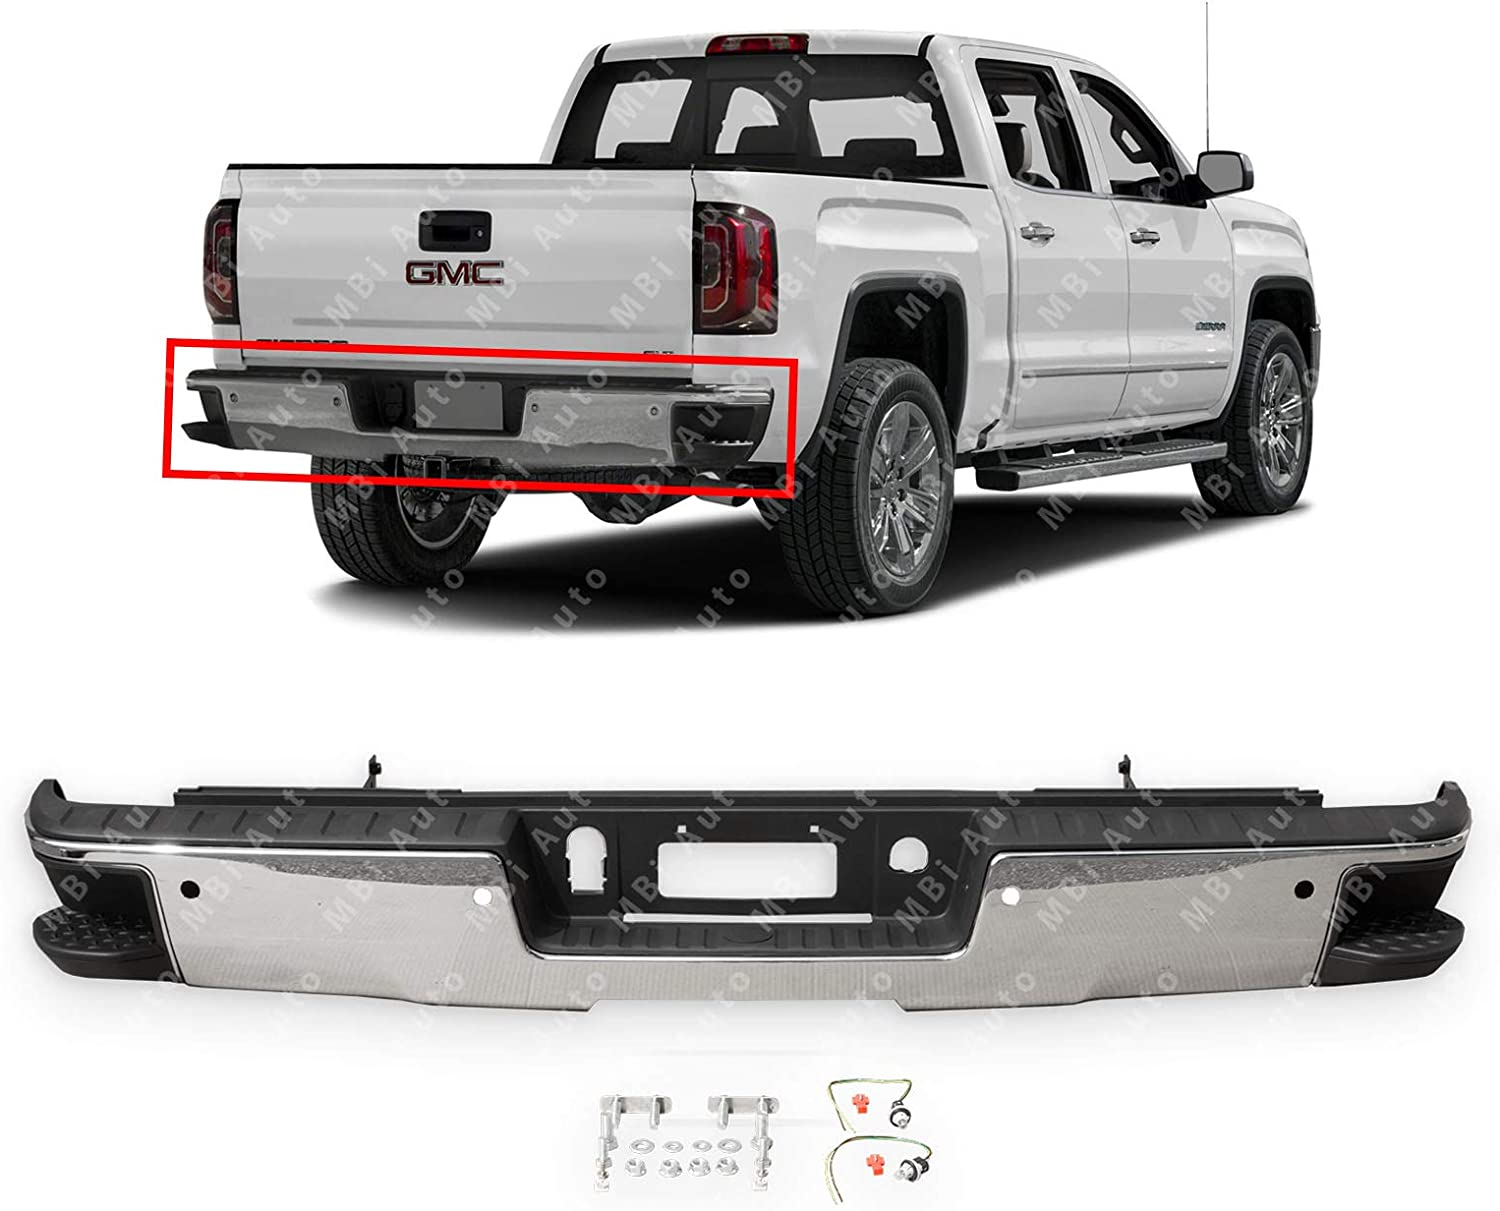 ROADFAR Chrome Rear Bumper with Corner Step Fits for Chevrolet Silverado 1500 2014-2018,GMC Sierra 1500 2014-2018 Rear Step Bumper Assembly Without Sensor Holes